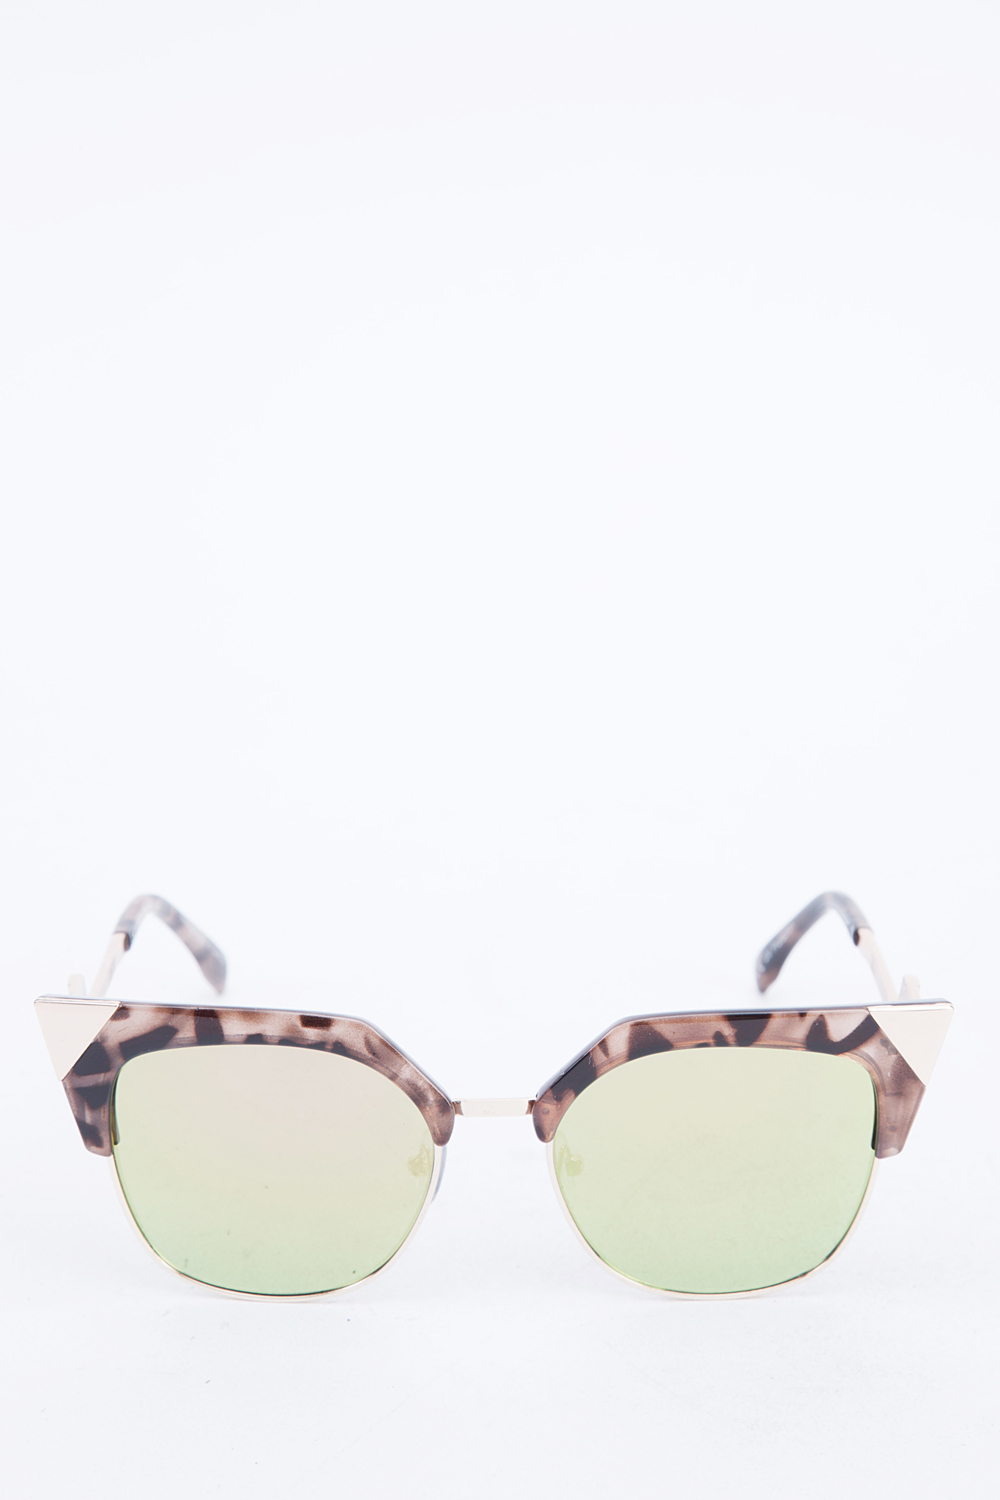 Half Frame Square Glasses : Printed Half Frame Square Sunglasses - Just ?5